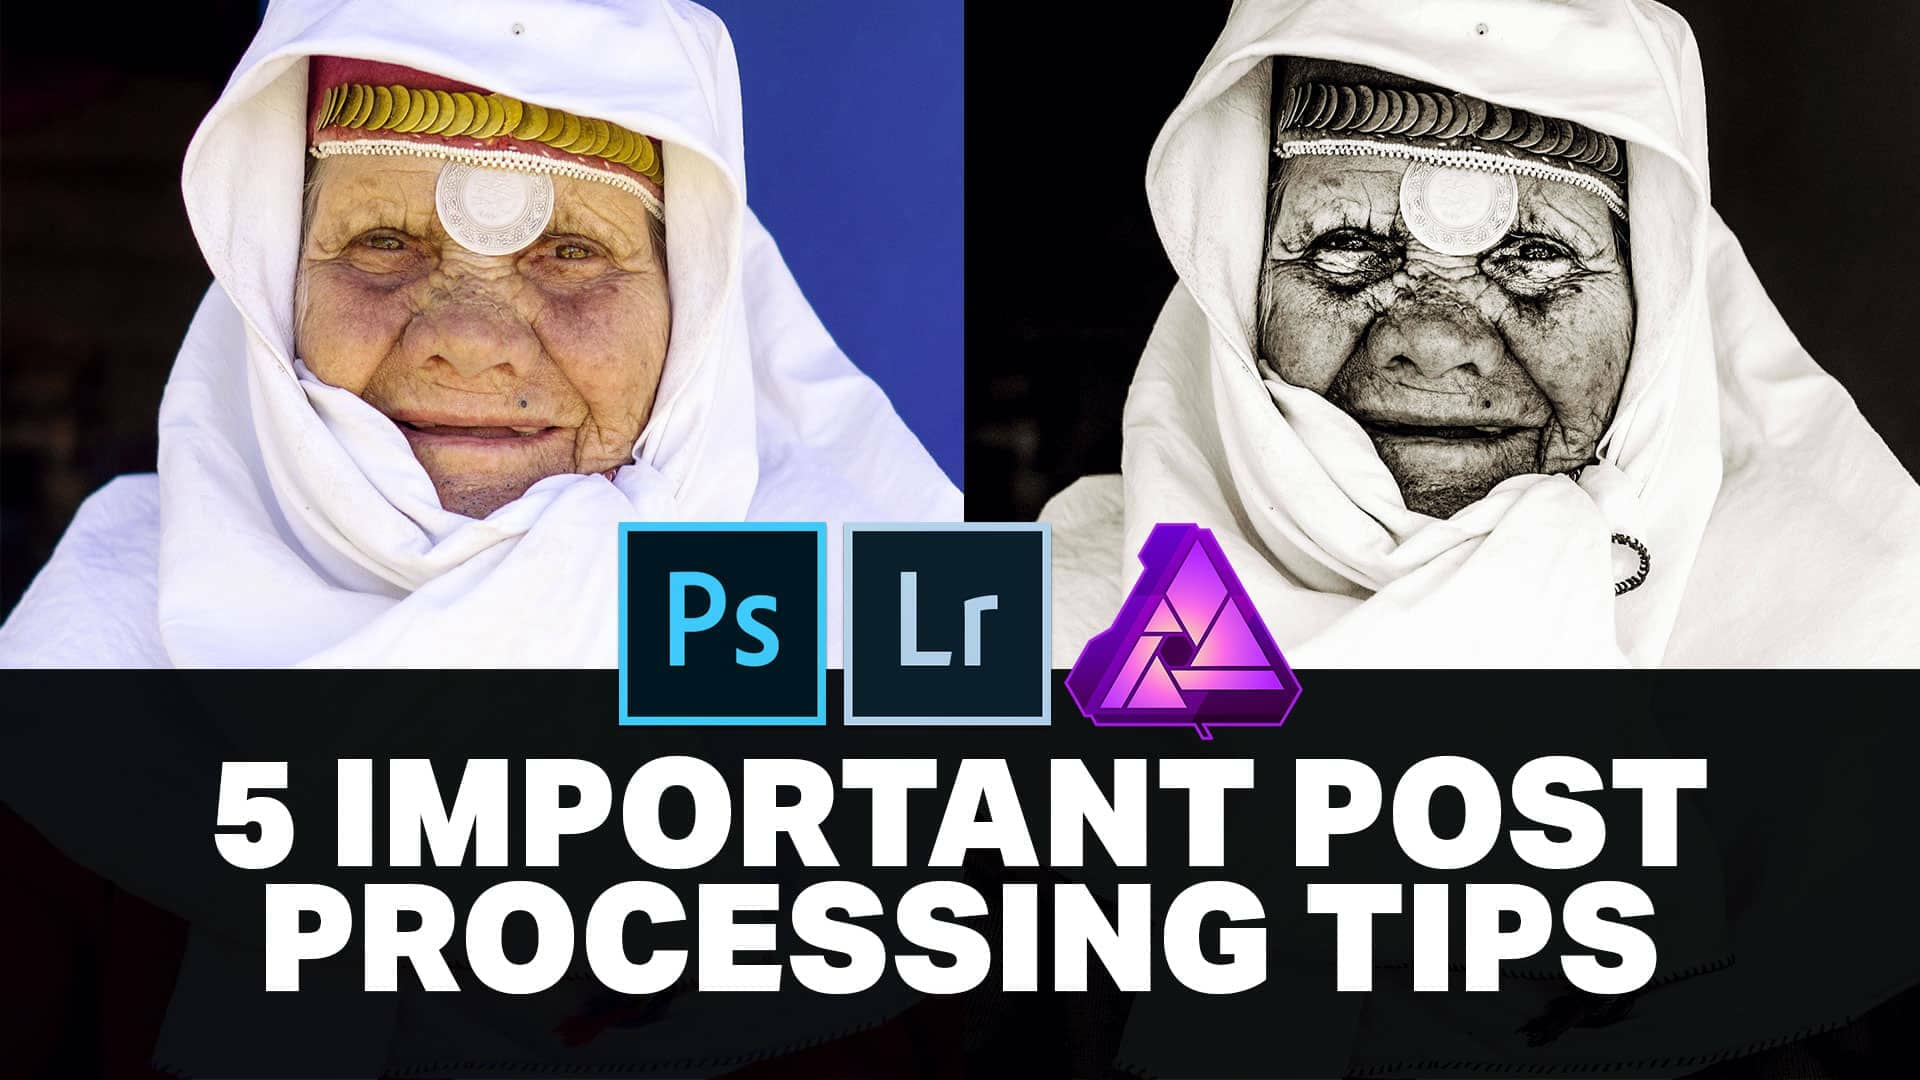 5 Important Post Processing Tips